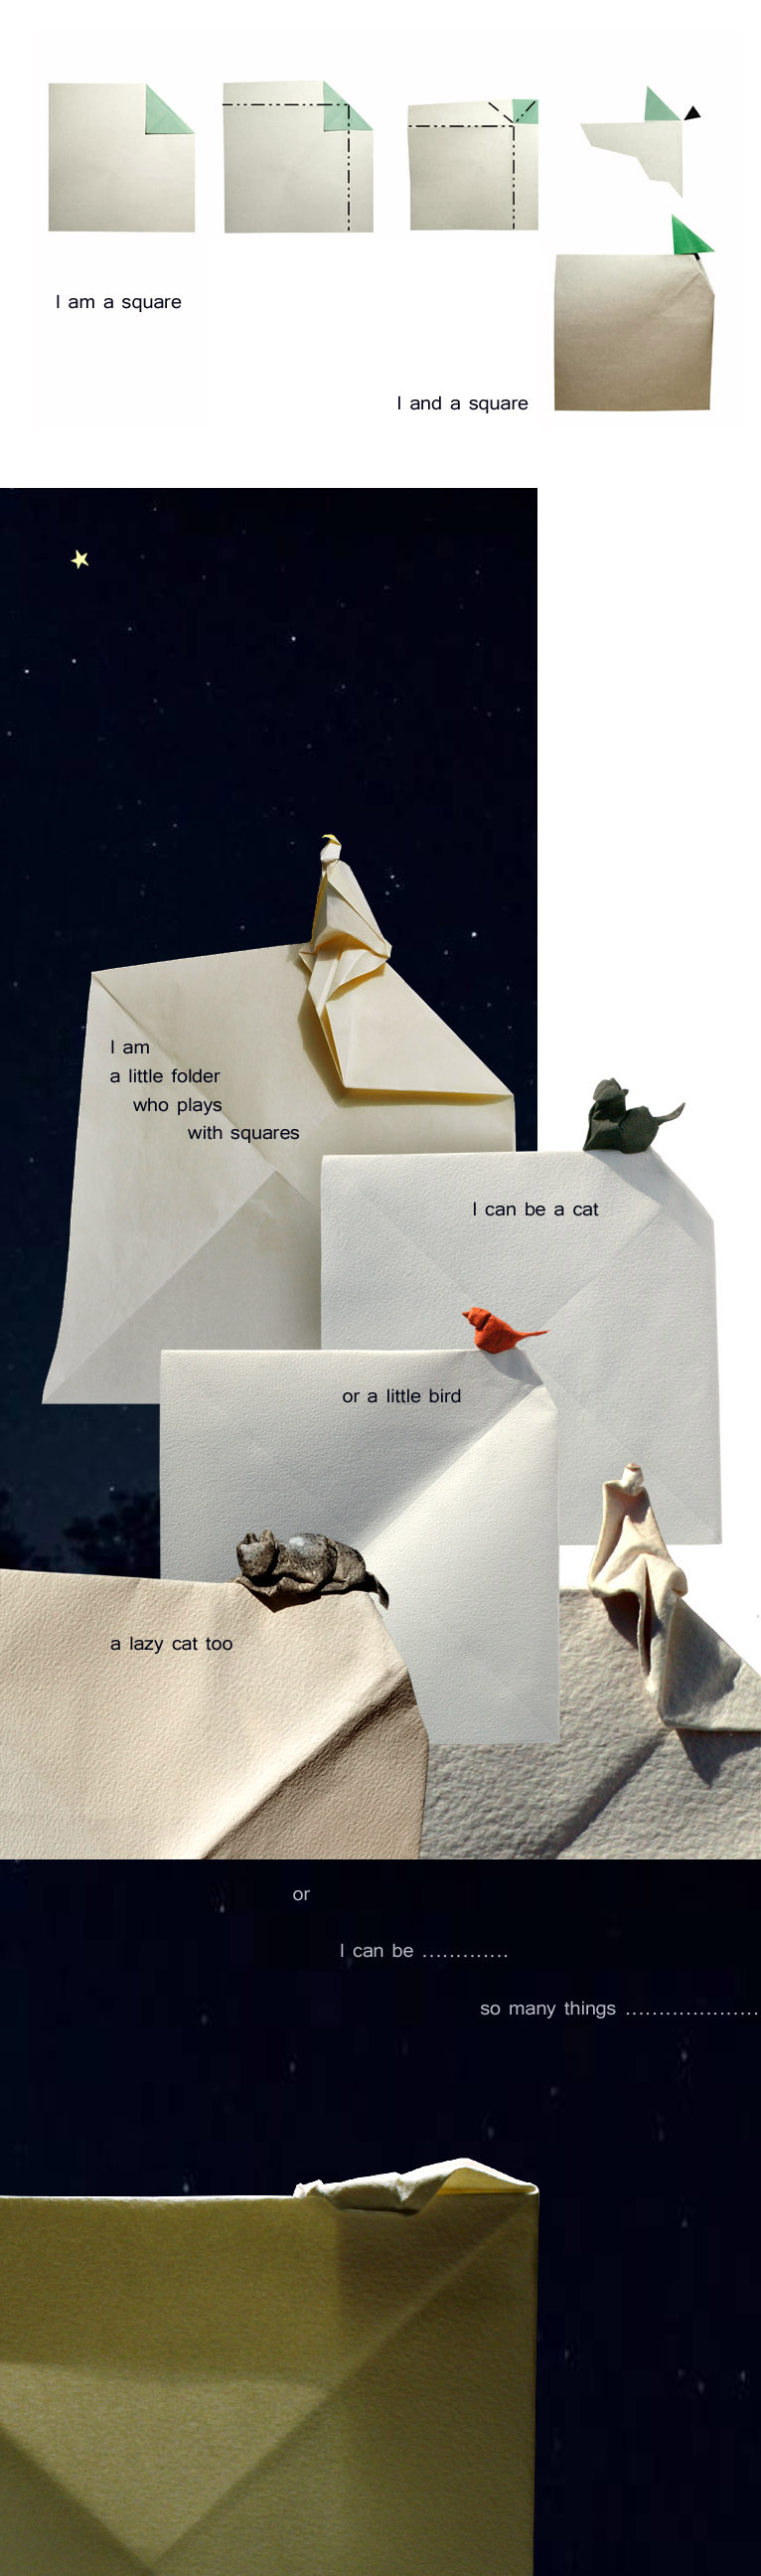 I am-and a Square, origami sculptures by Giang Dinh